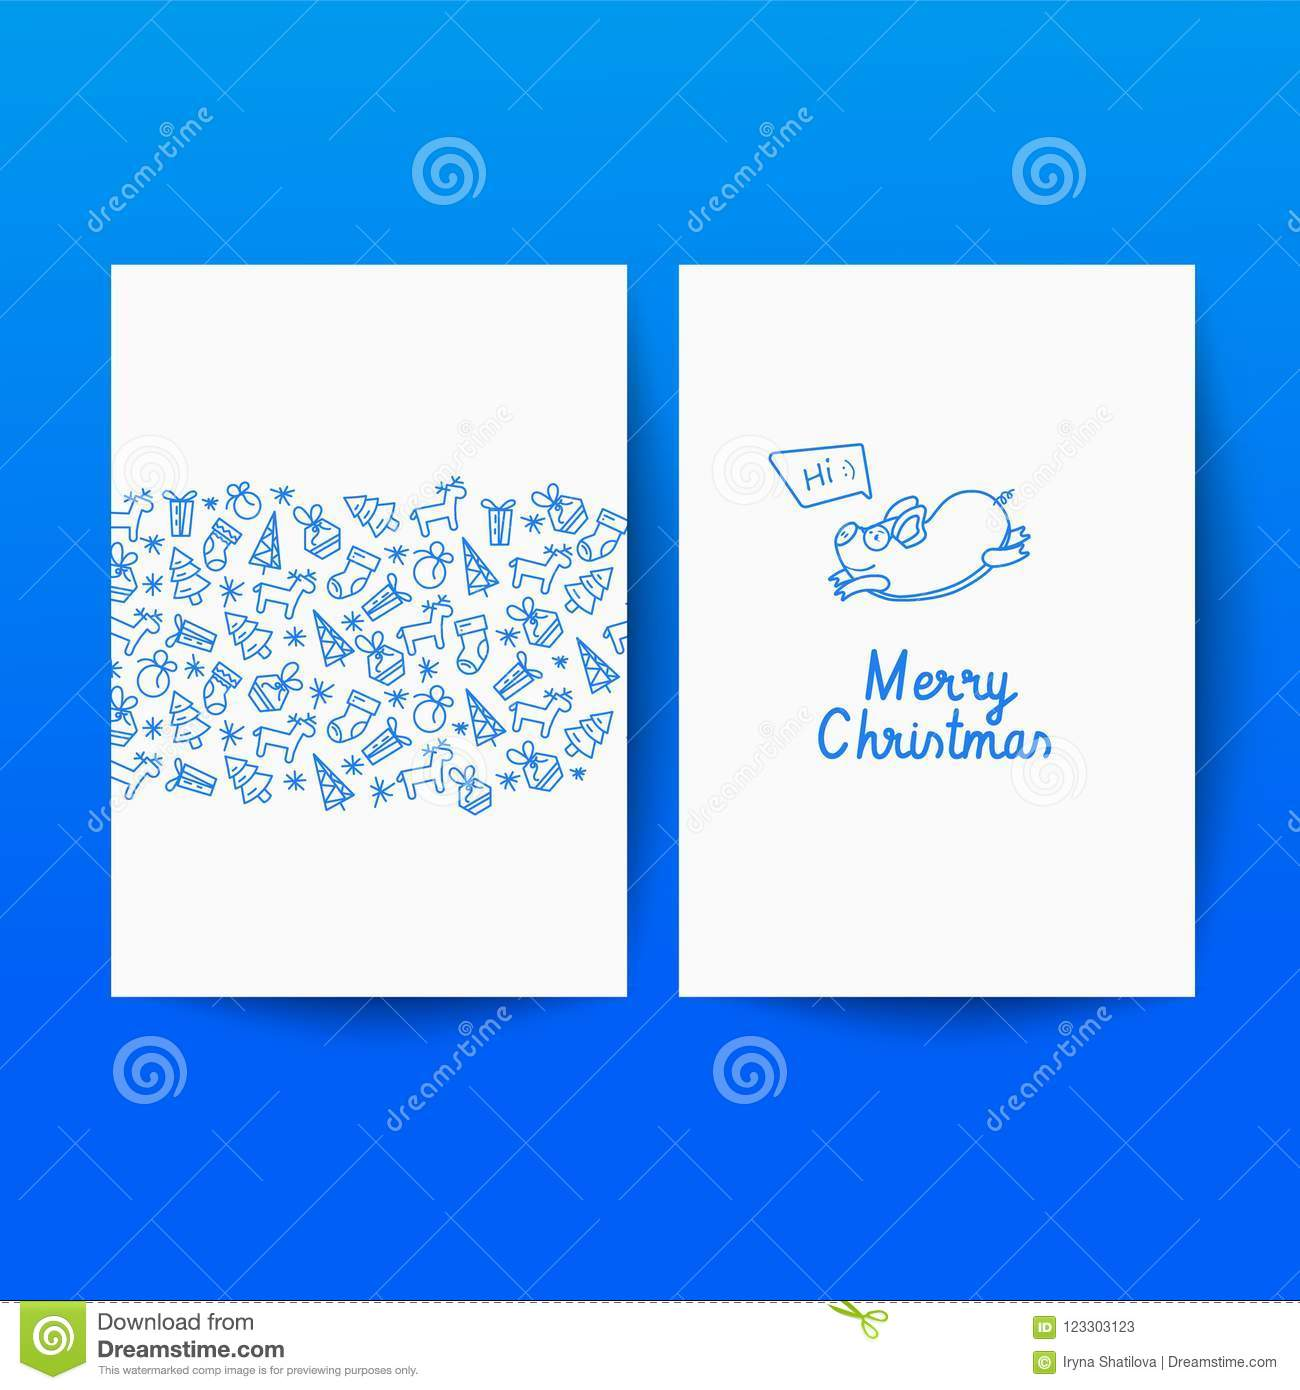 Premium Background For Holiday Greeting Card. Stock Vector ...